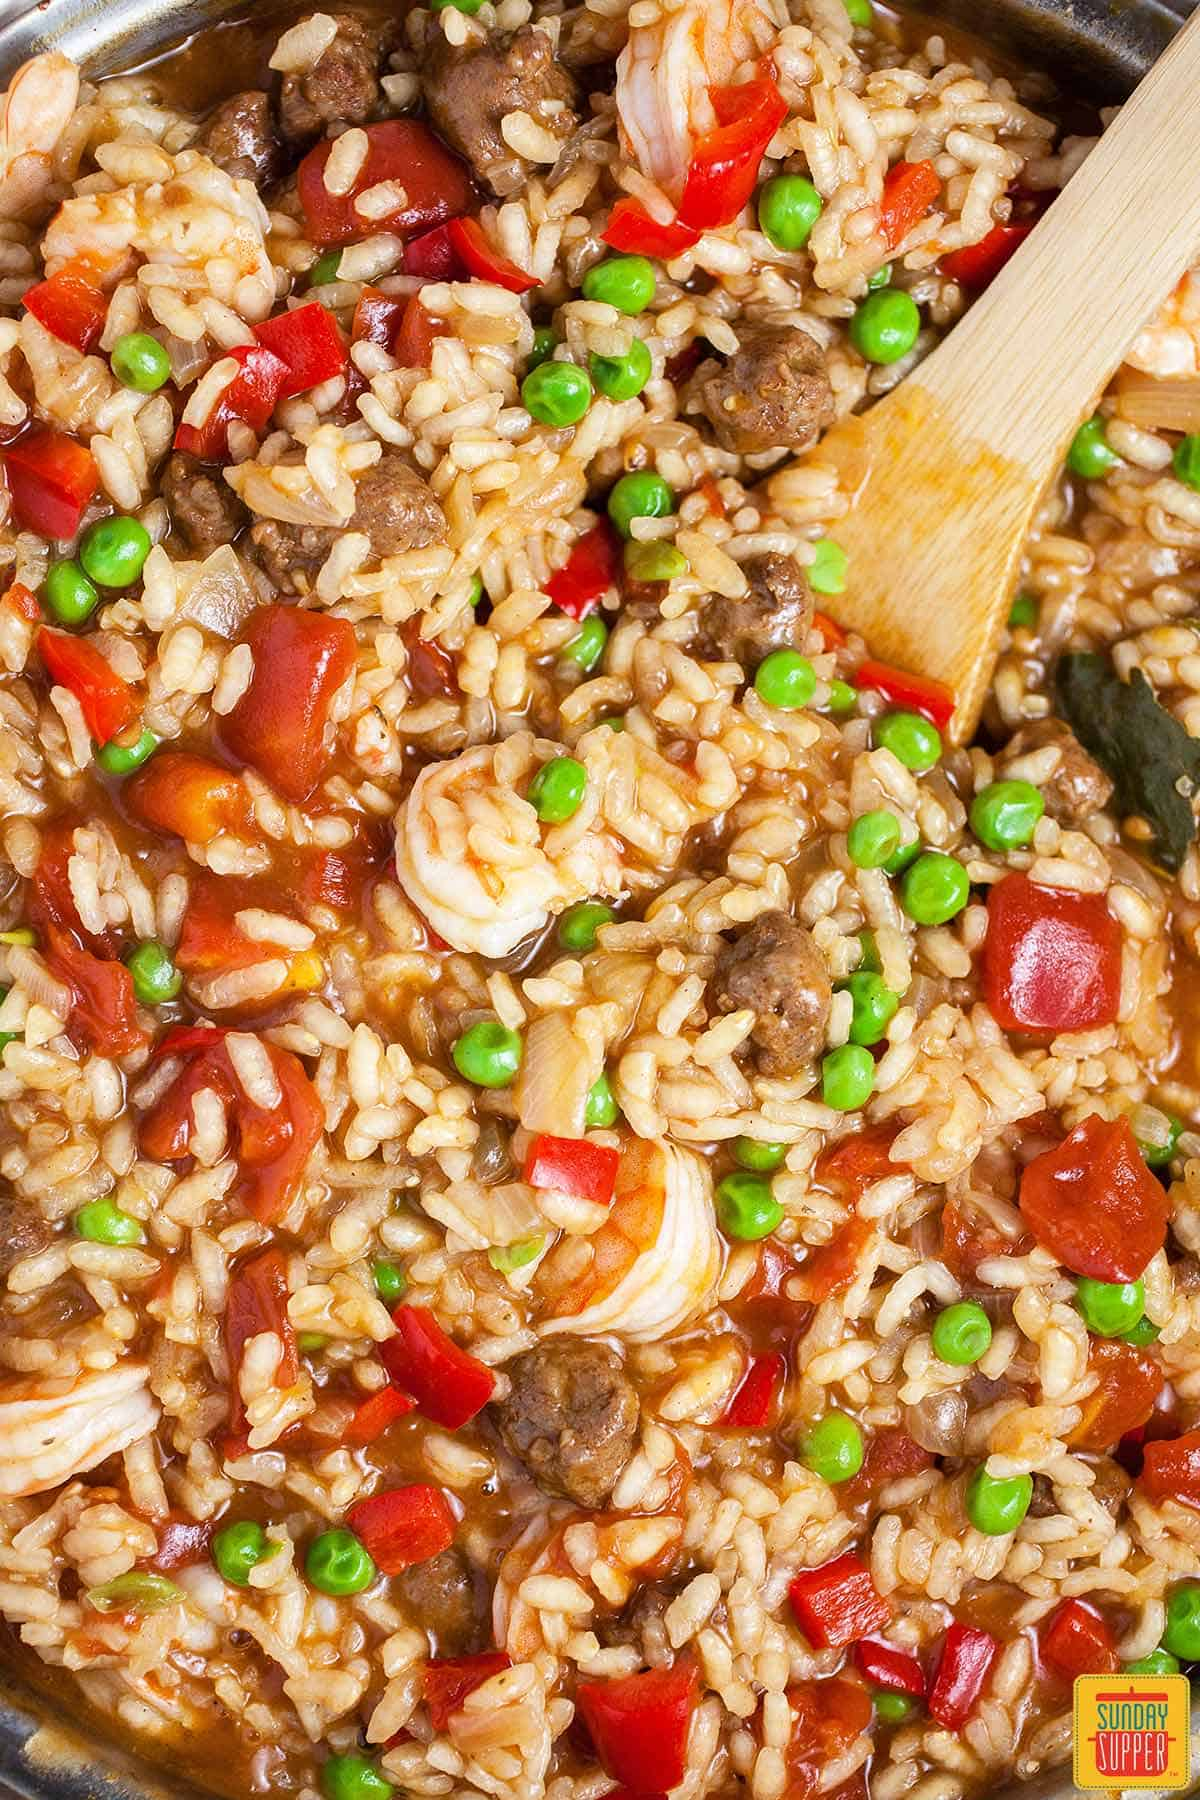 Stirring the shrimp and peas into the easy paella recipe in a skillet, close up